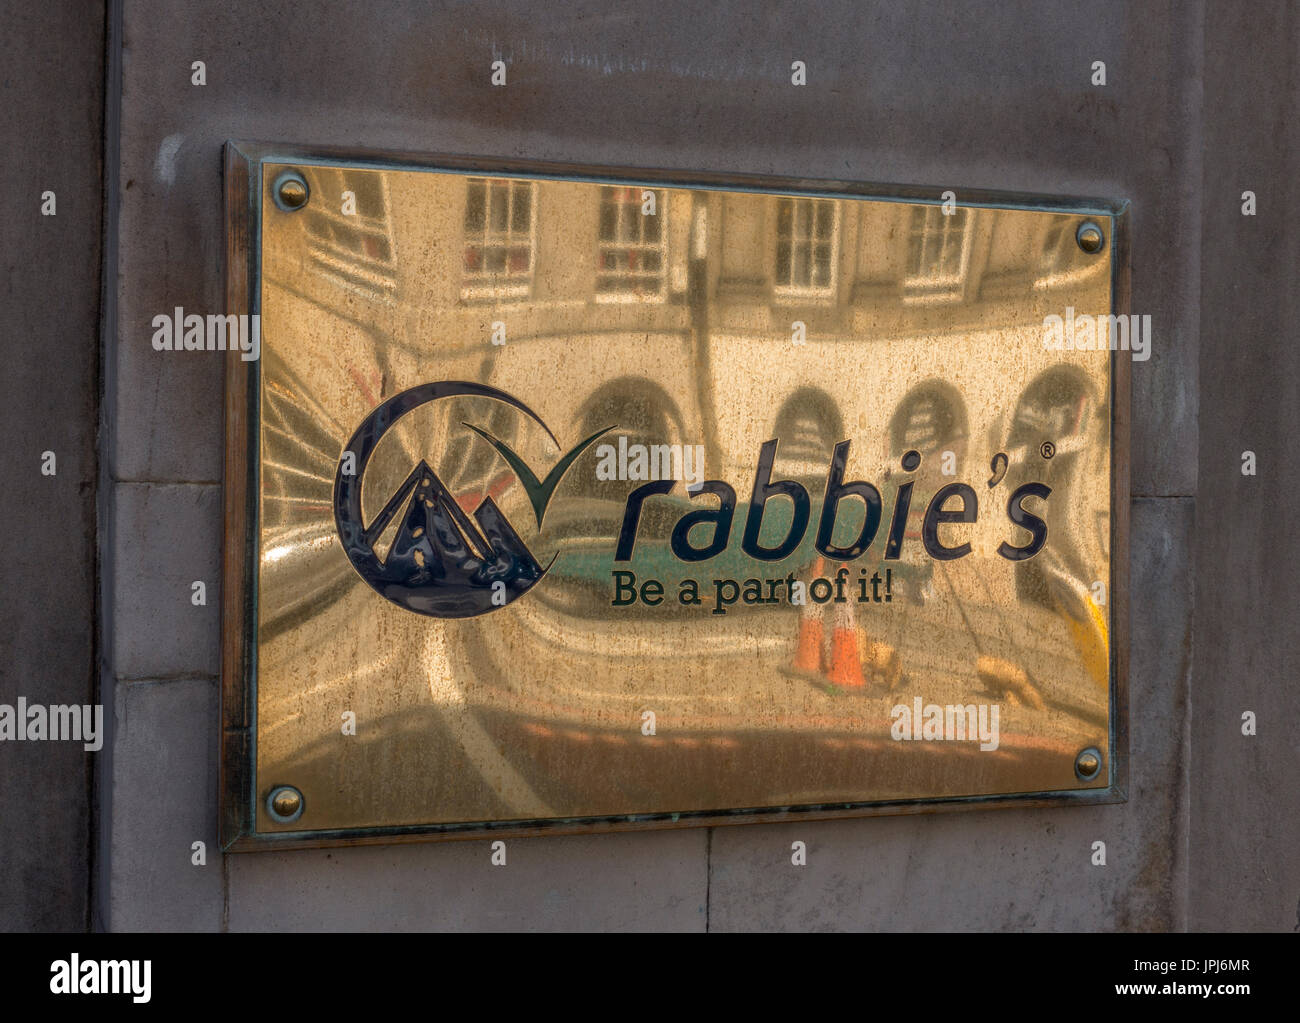 The Rabbies Tour Company Logo Outside Their Retail Location In Edinburgh Scotland On A Brass Name Plate - Stock Image